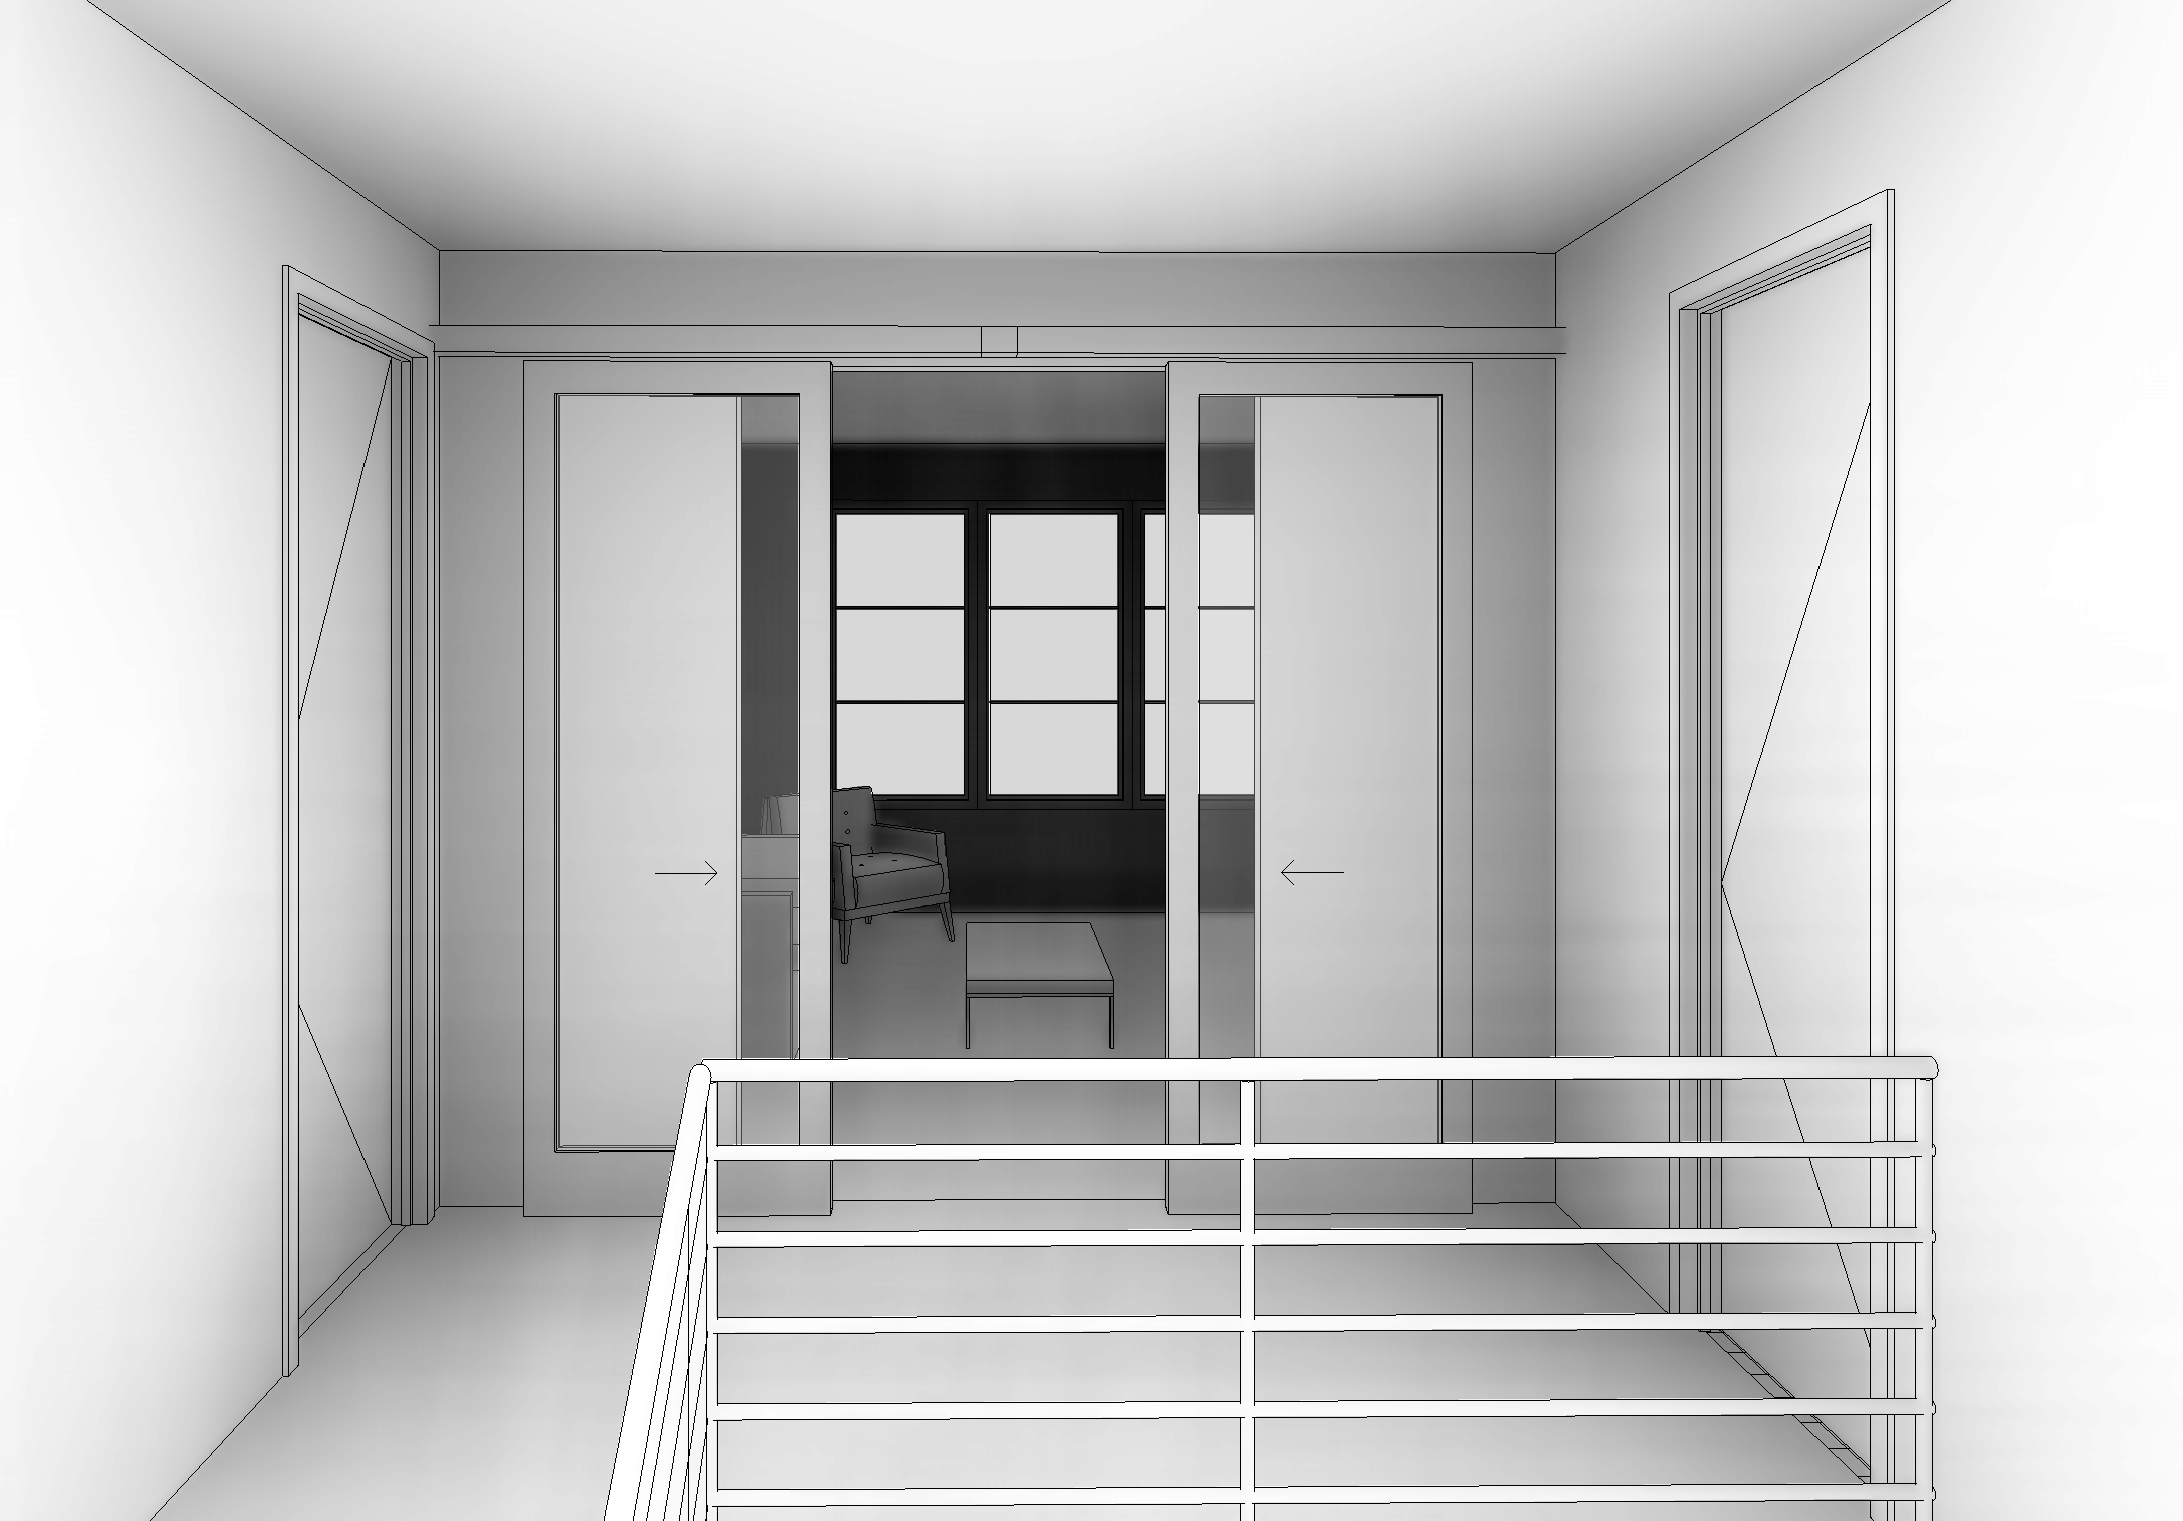 Smoot10 - 3D View - BEDROOM 1 FROM STAIR.jpg